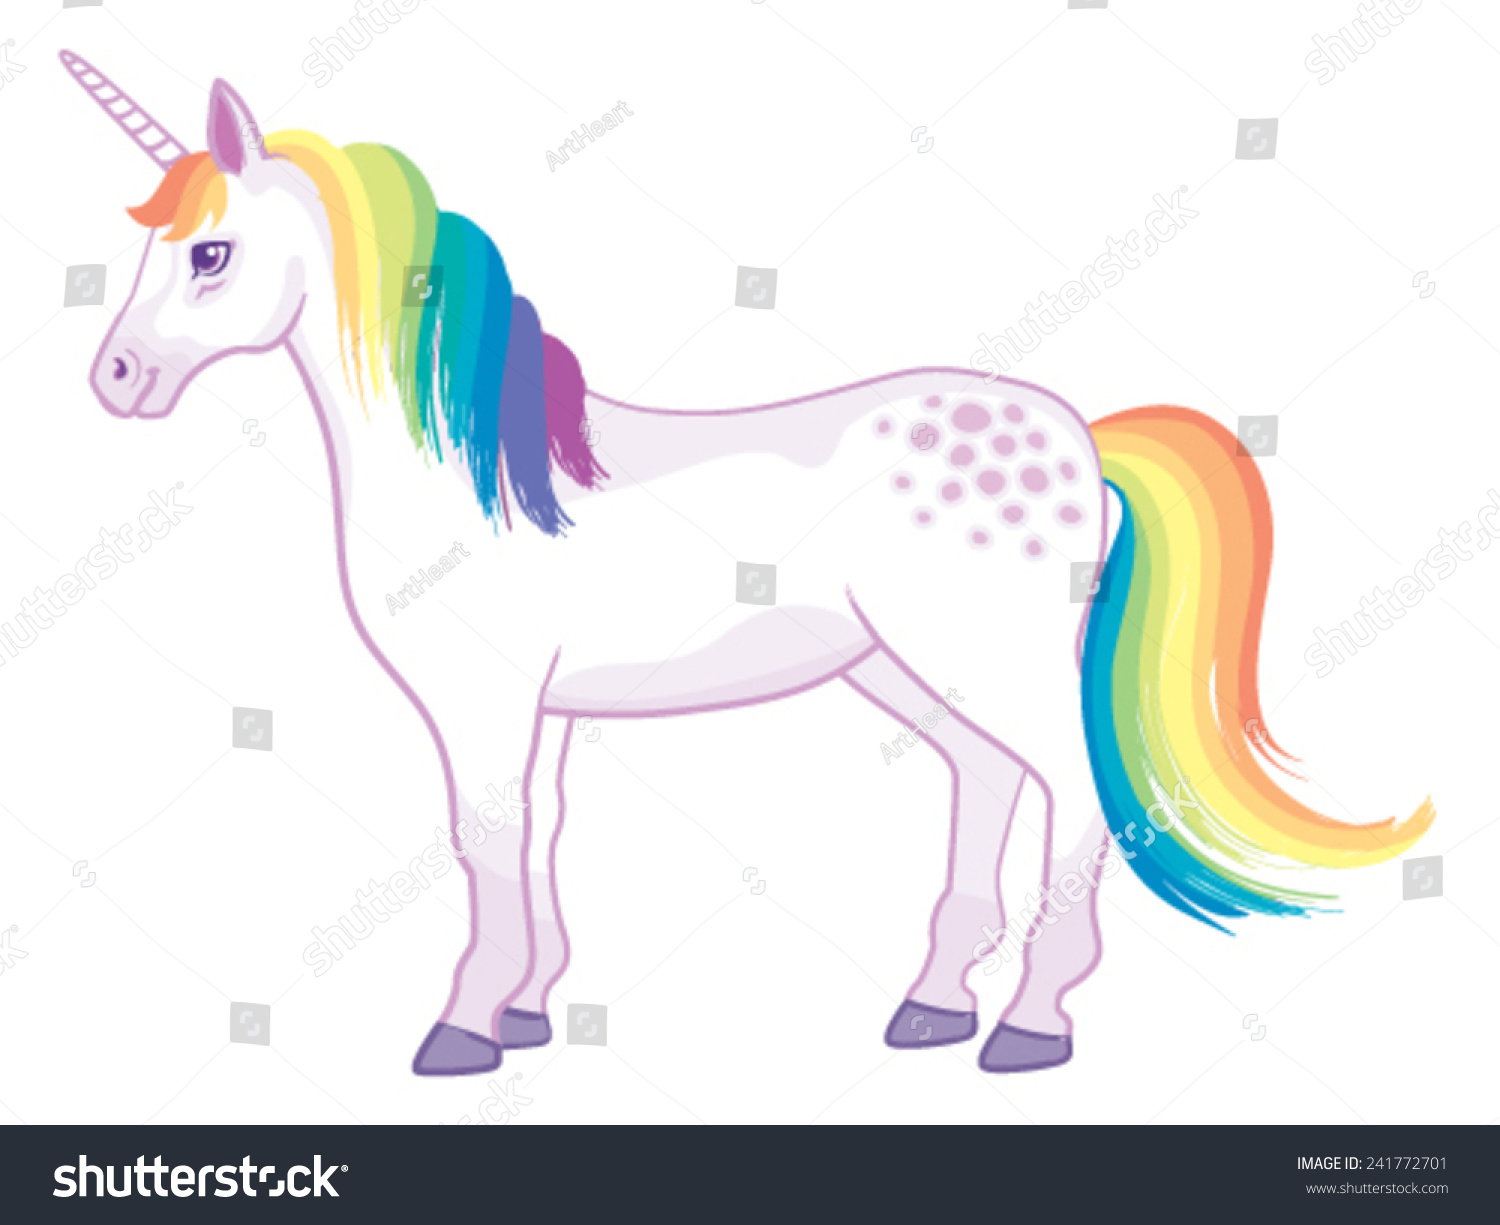 Cartoon Unicorn Rainbow Mane Tail Standing Stock Vector 241772701 ...